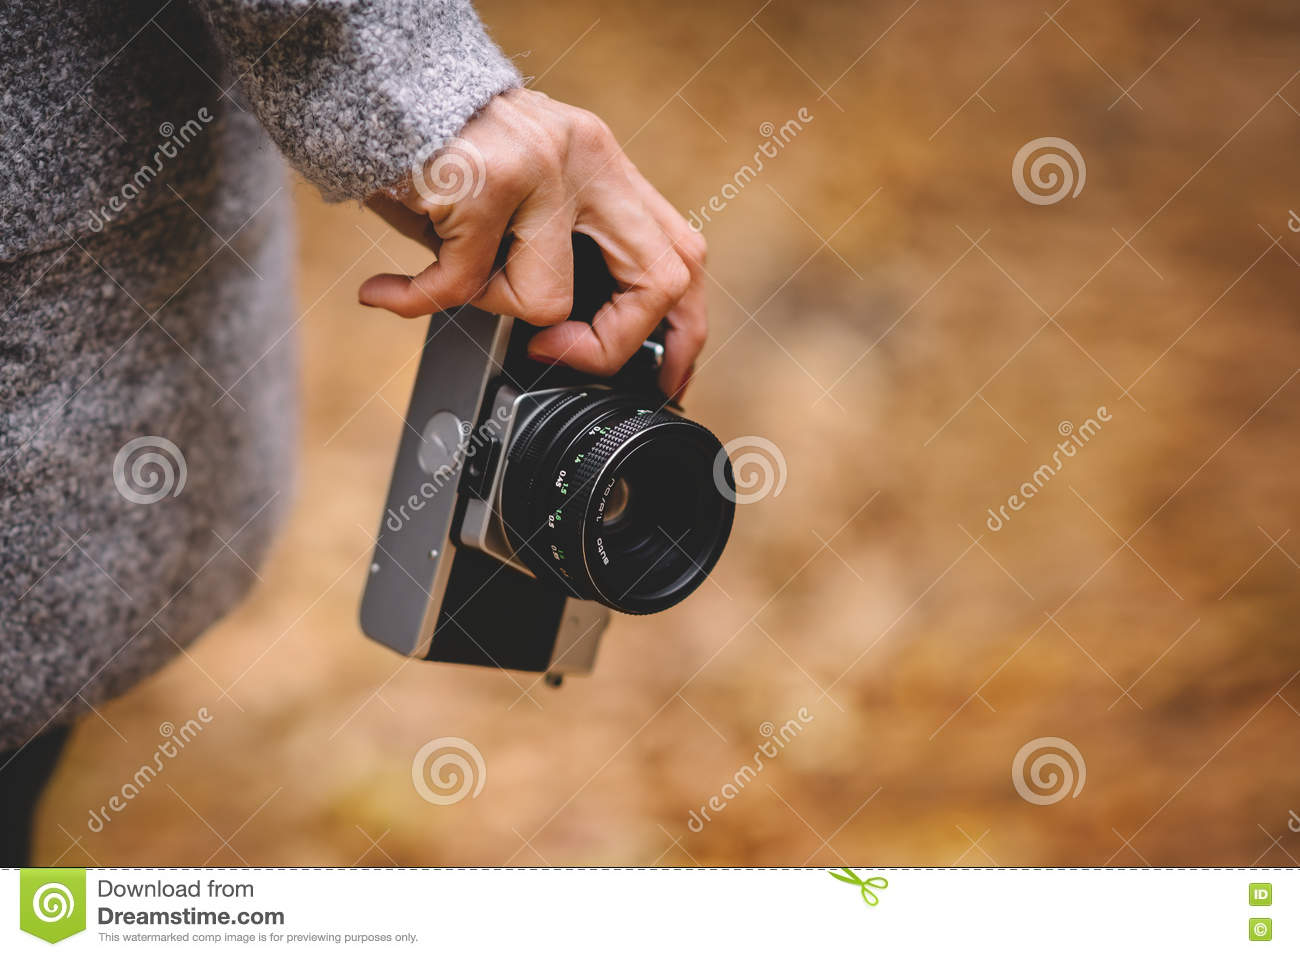 Woman hand with retro analog film camera. Concept for travel, wanderlust, outdoor adventure. Natural fall, defocused